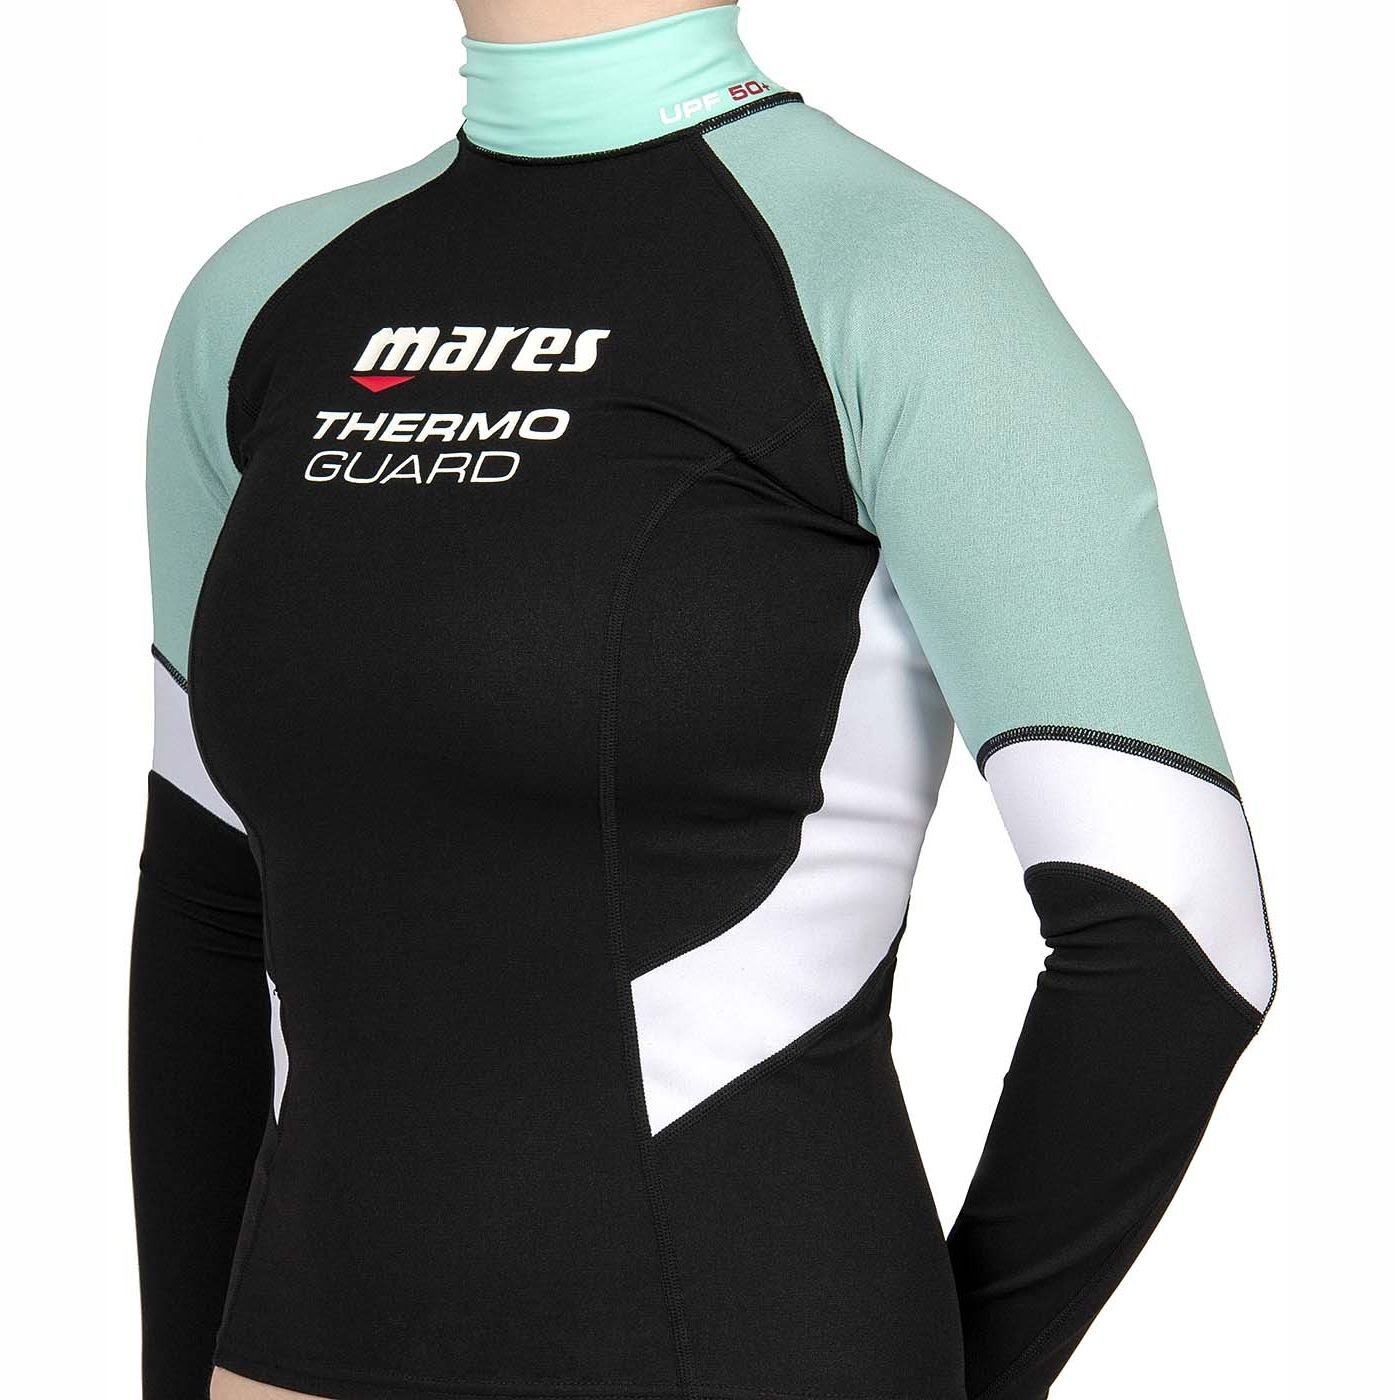 Thermo Guard Shirt 0,5mm Langarm - MARES